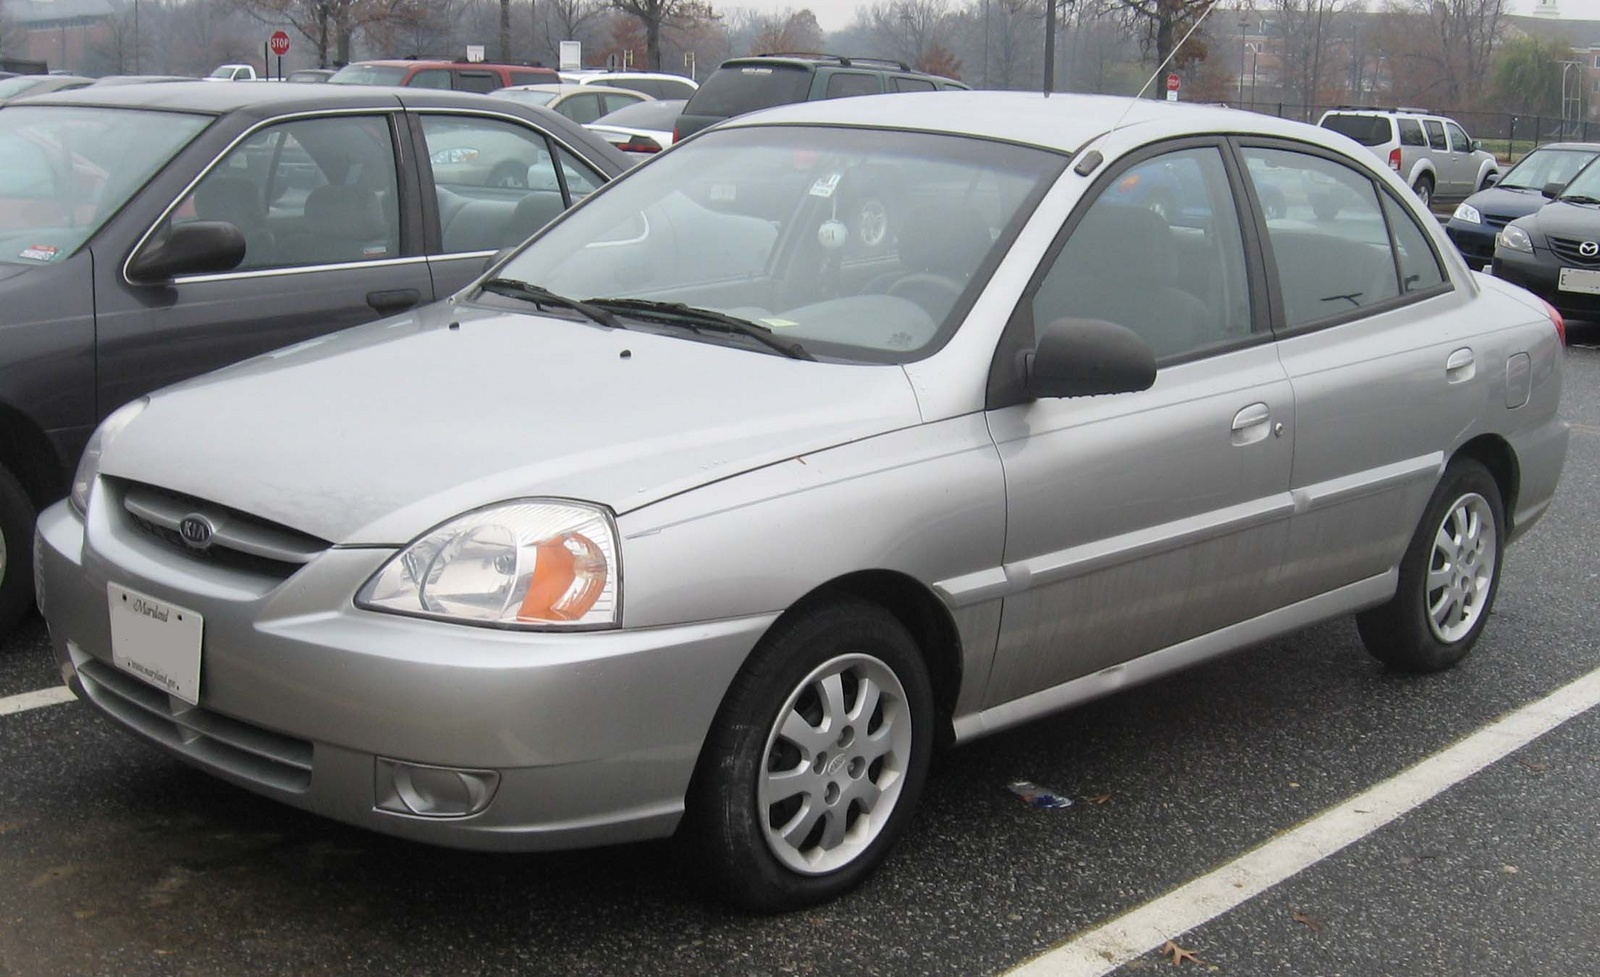 Kia Rio 2003 Review Auto Cars 1 6l Engine Amazing Pictures And Images Look At The Car